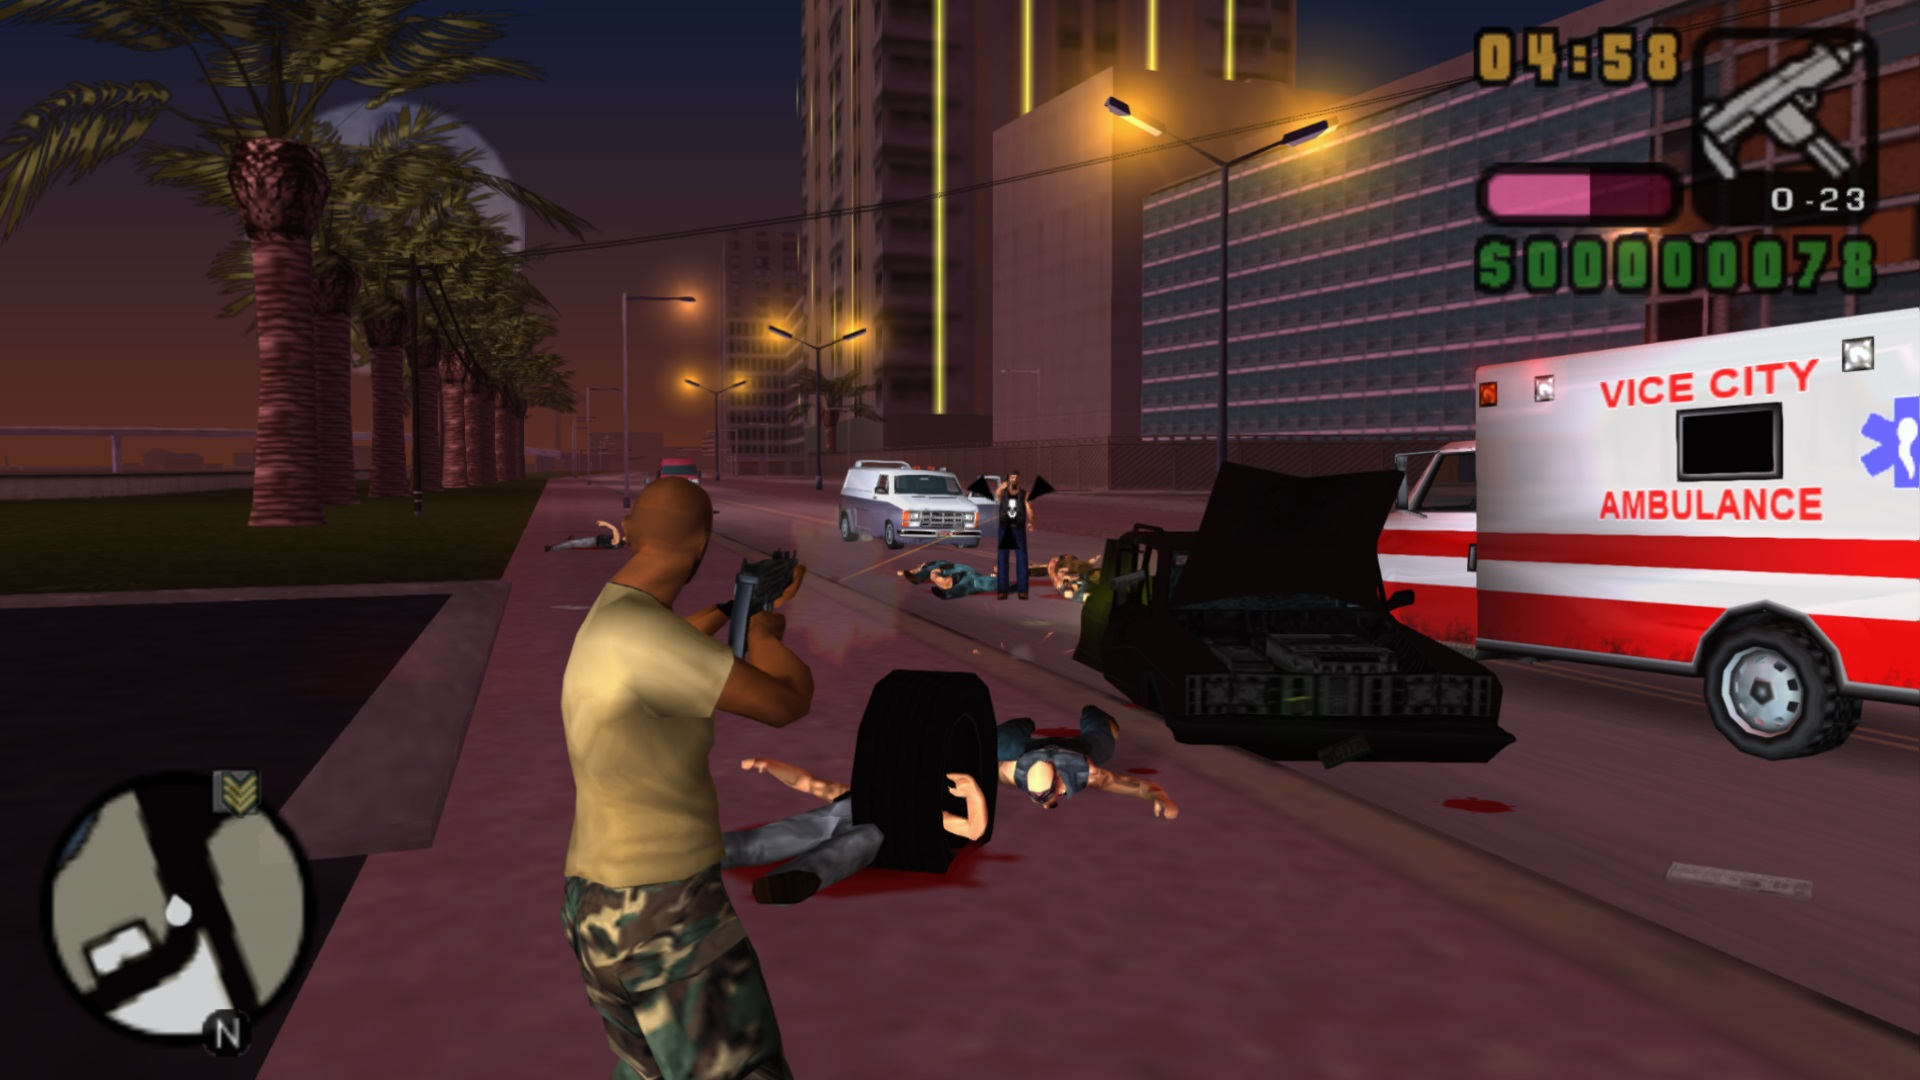 <span>GTA <b class=sec>VICE</b> <b class=sec>CITY</b> Cheats PS2 <b class=sec>Jetpack</b></span>